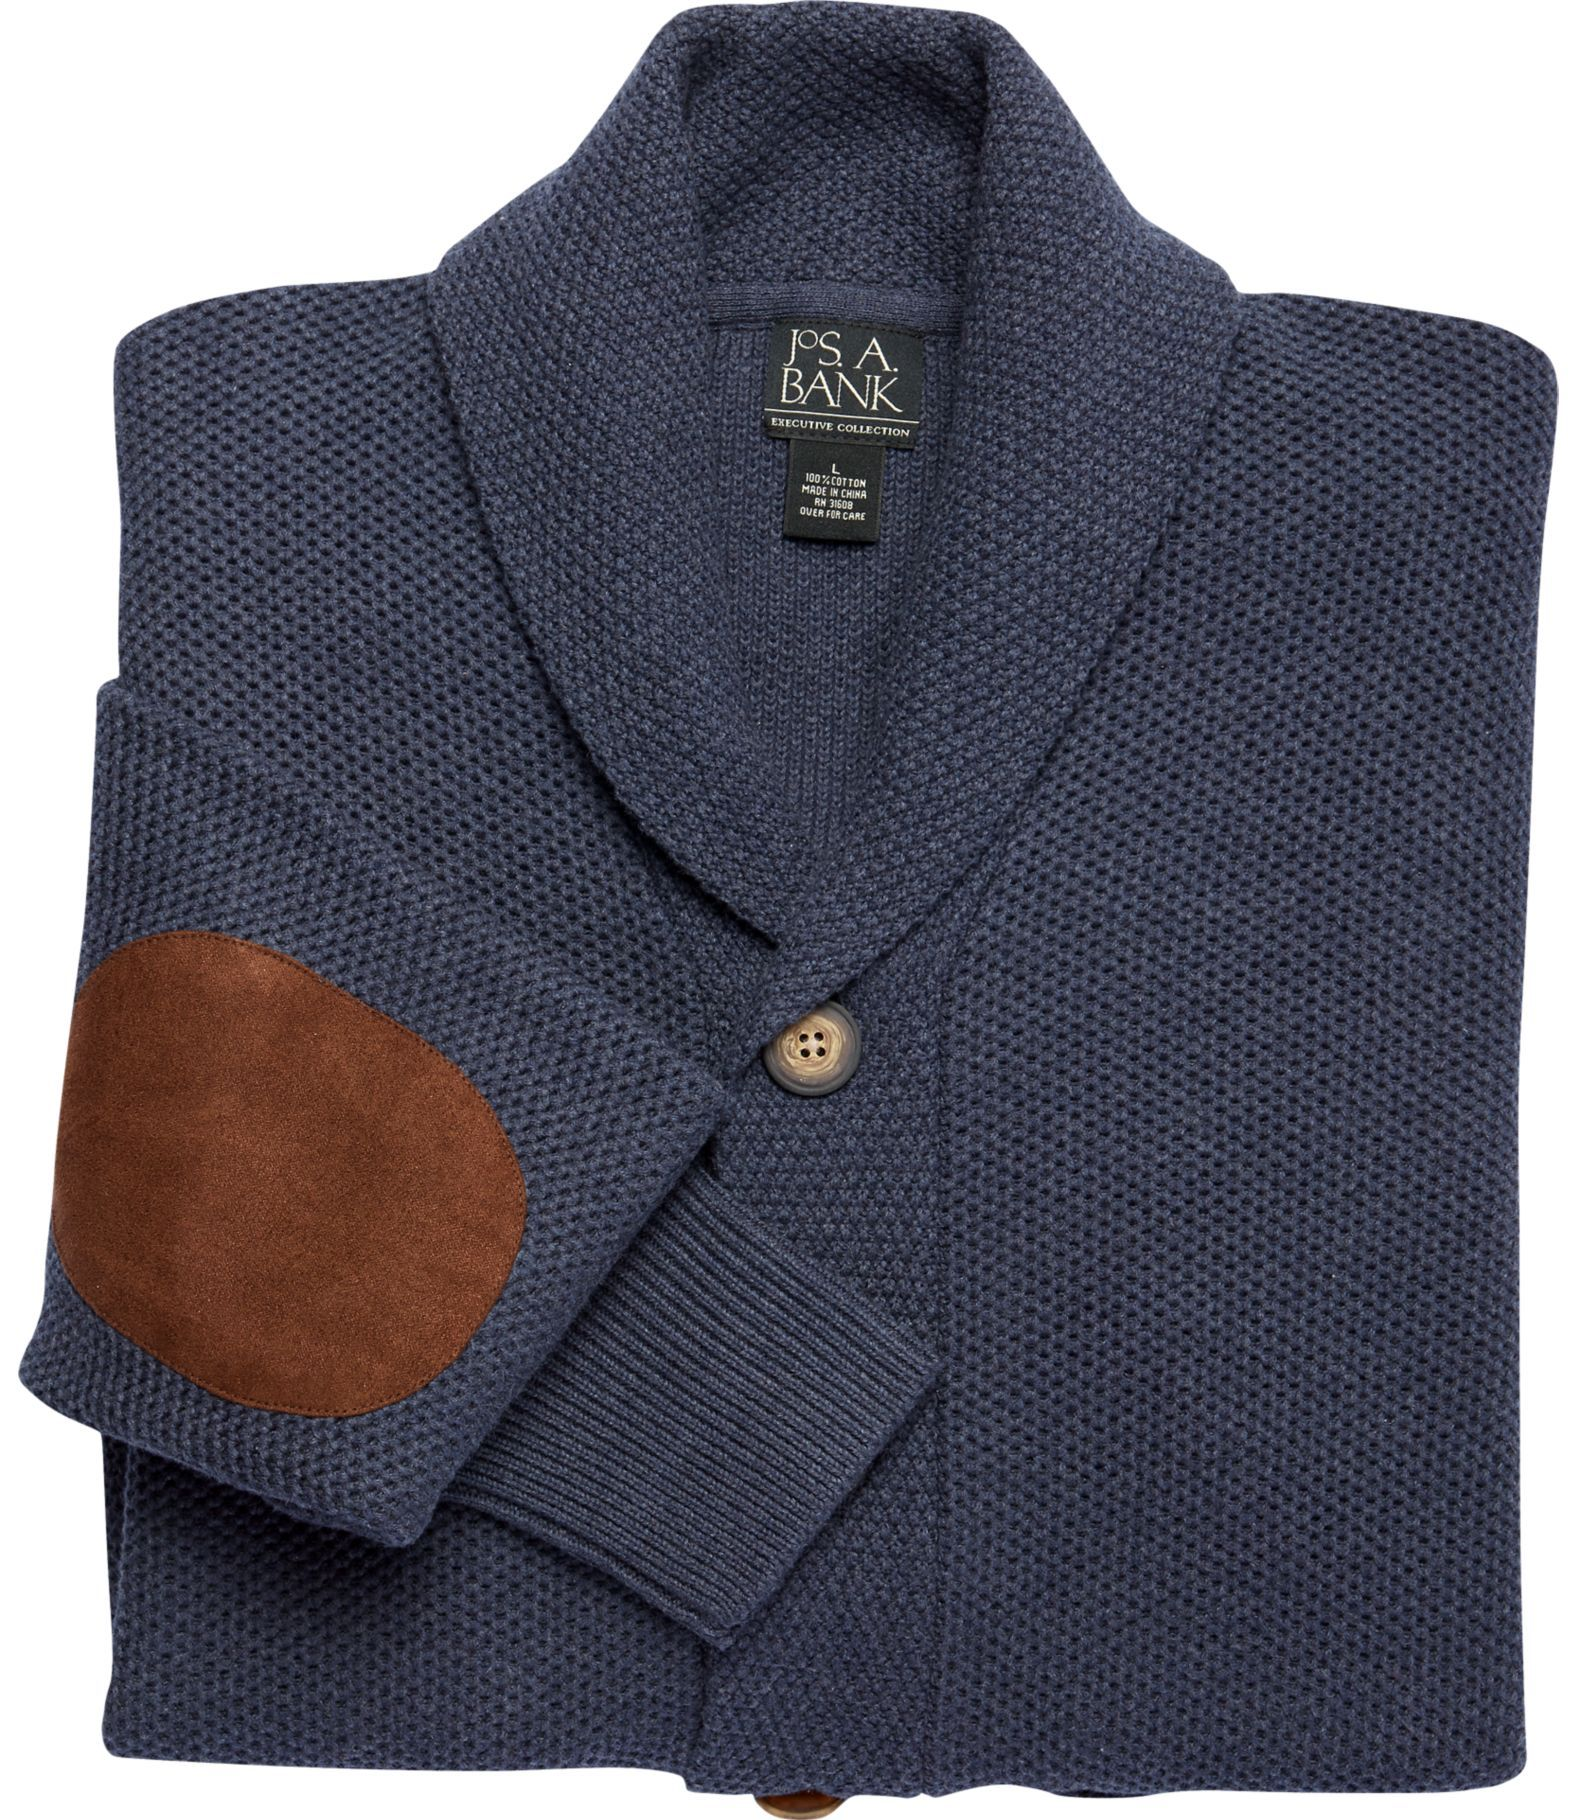 Executive Collection Cotton Cardigan Sweater